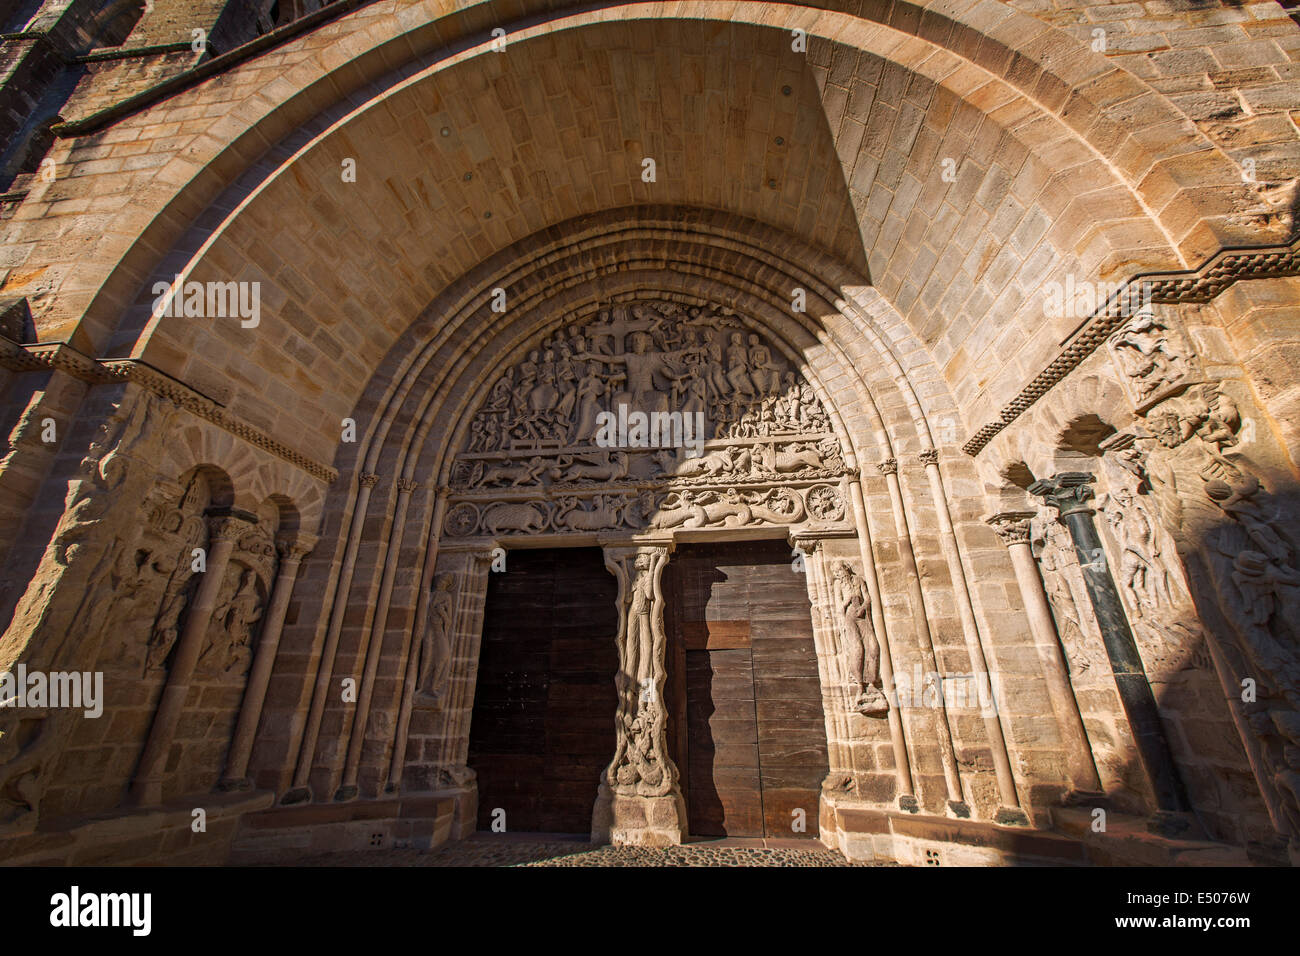 Romanesque tympanum portico Benedictine Abbey Cluniac monastery Moissac France - Stock Image